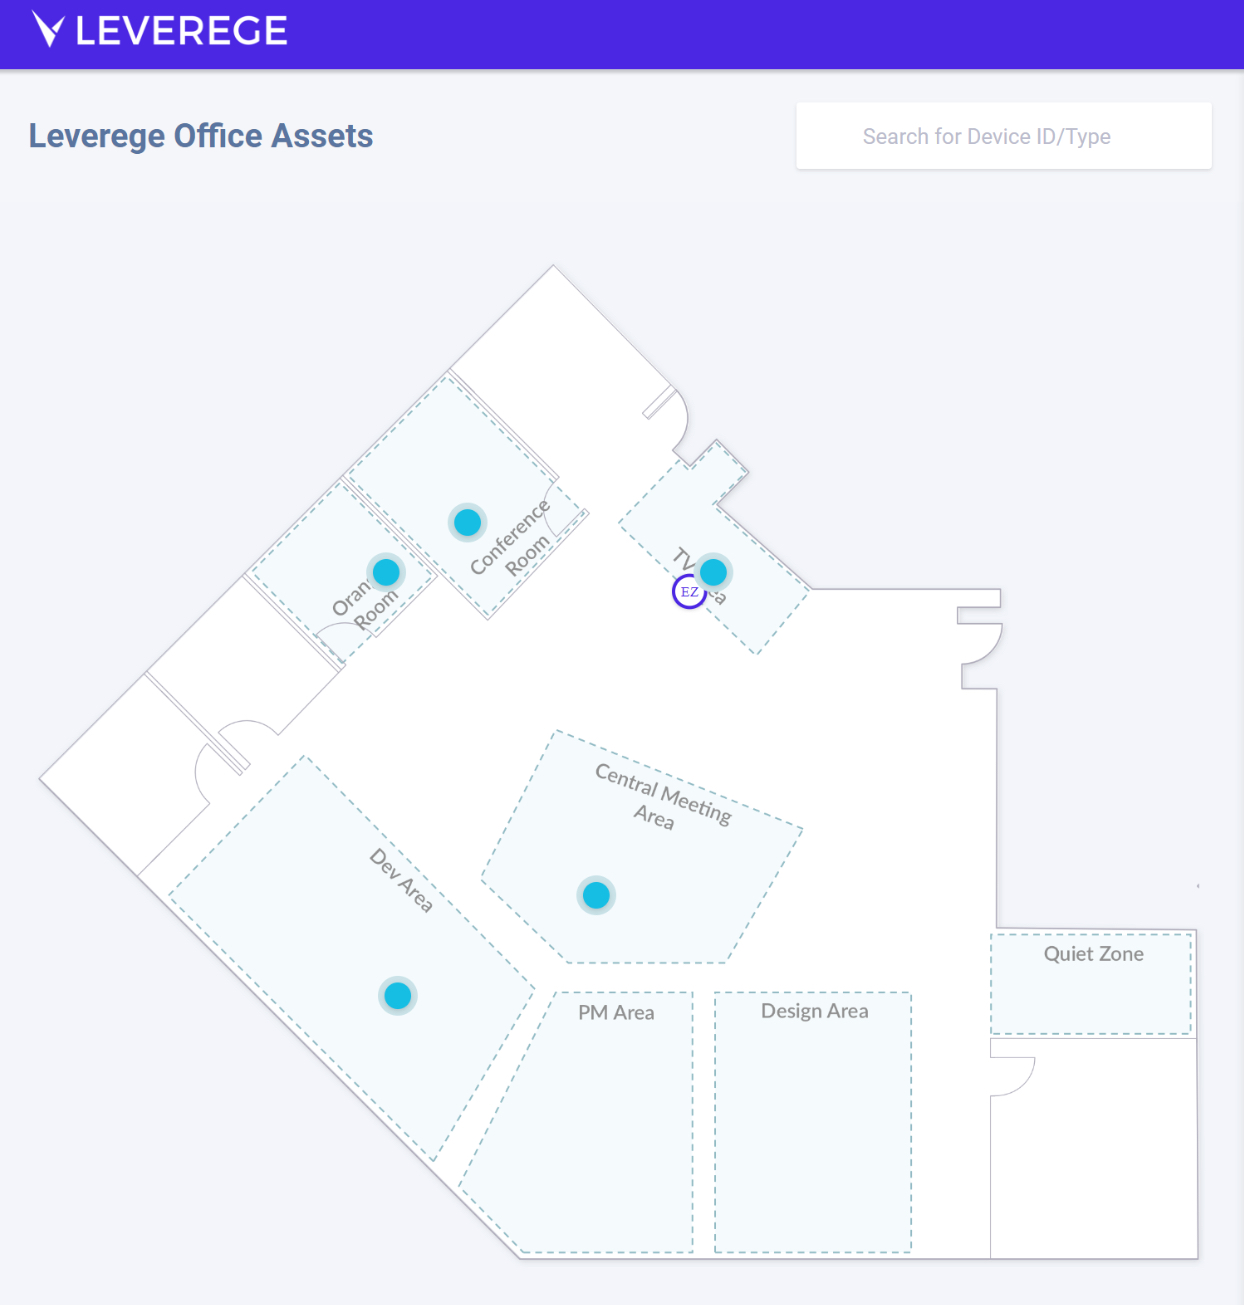 Leverege | Prototyping an Indoor Tracking System